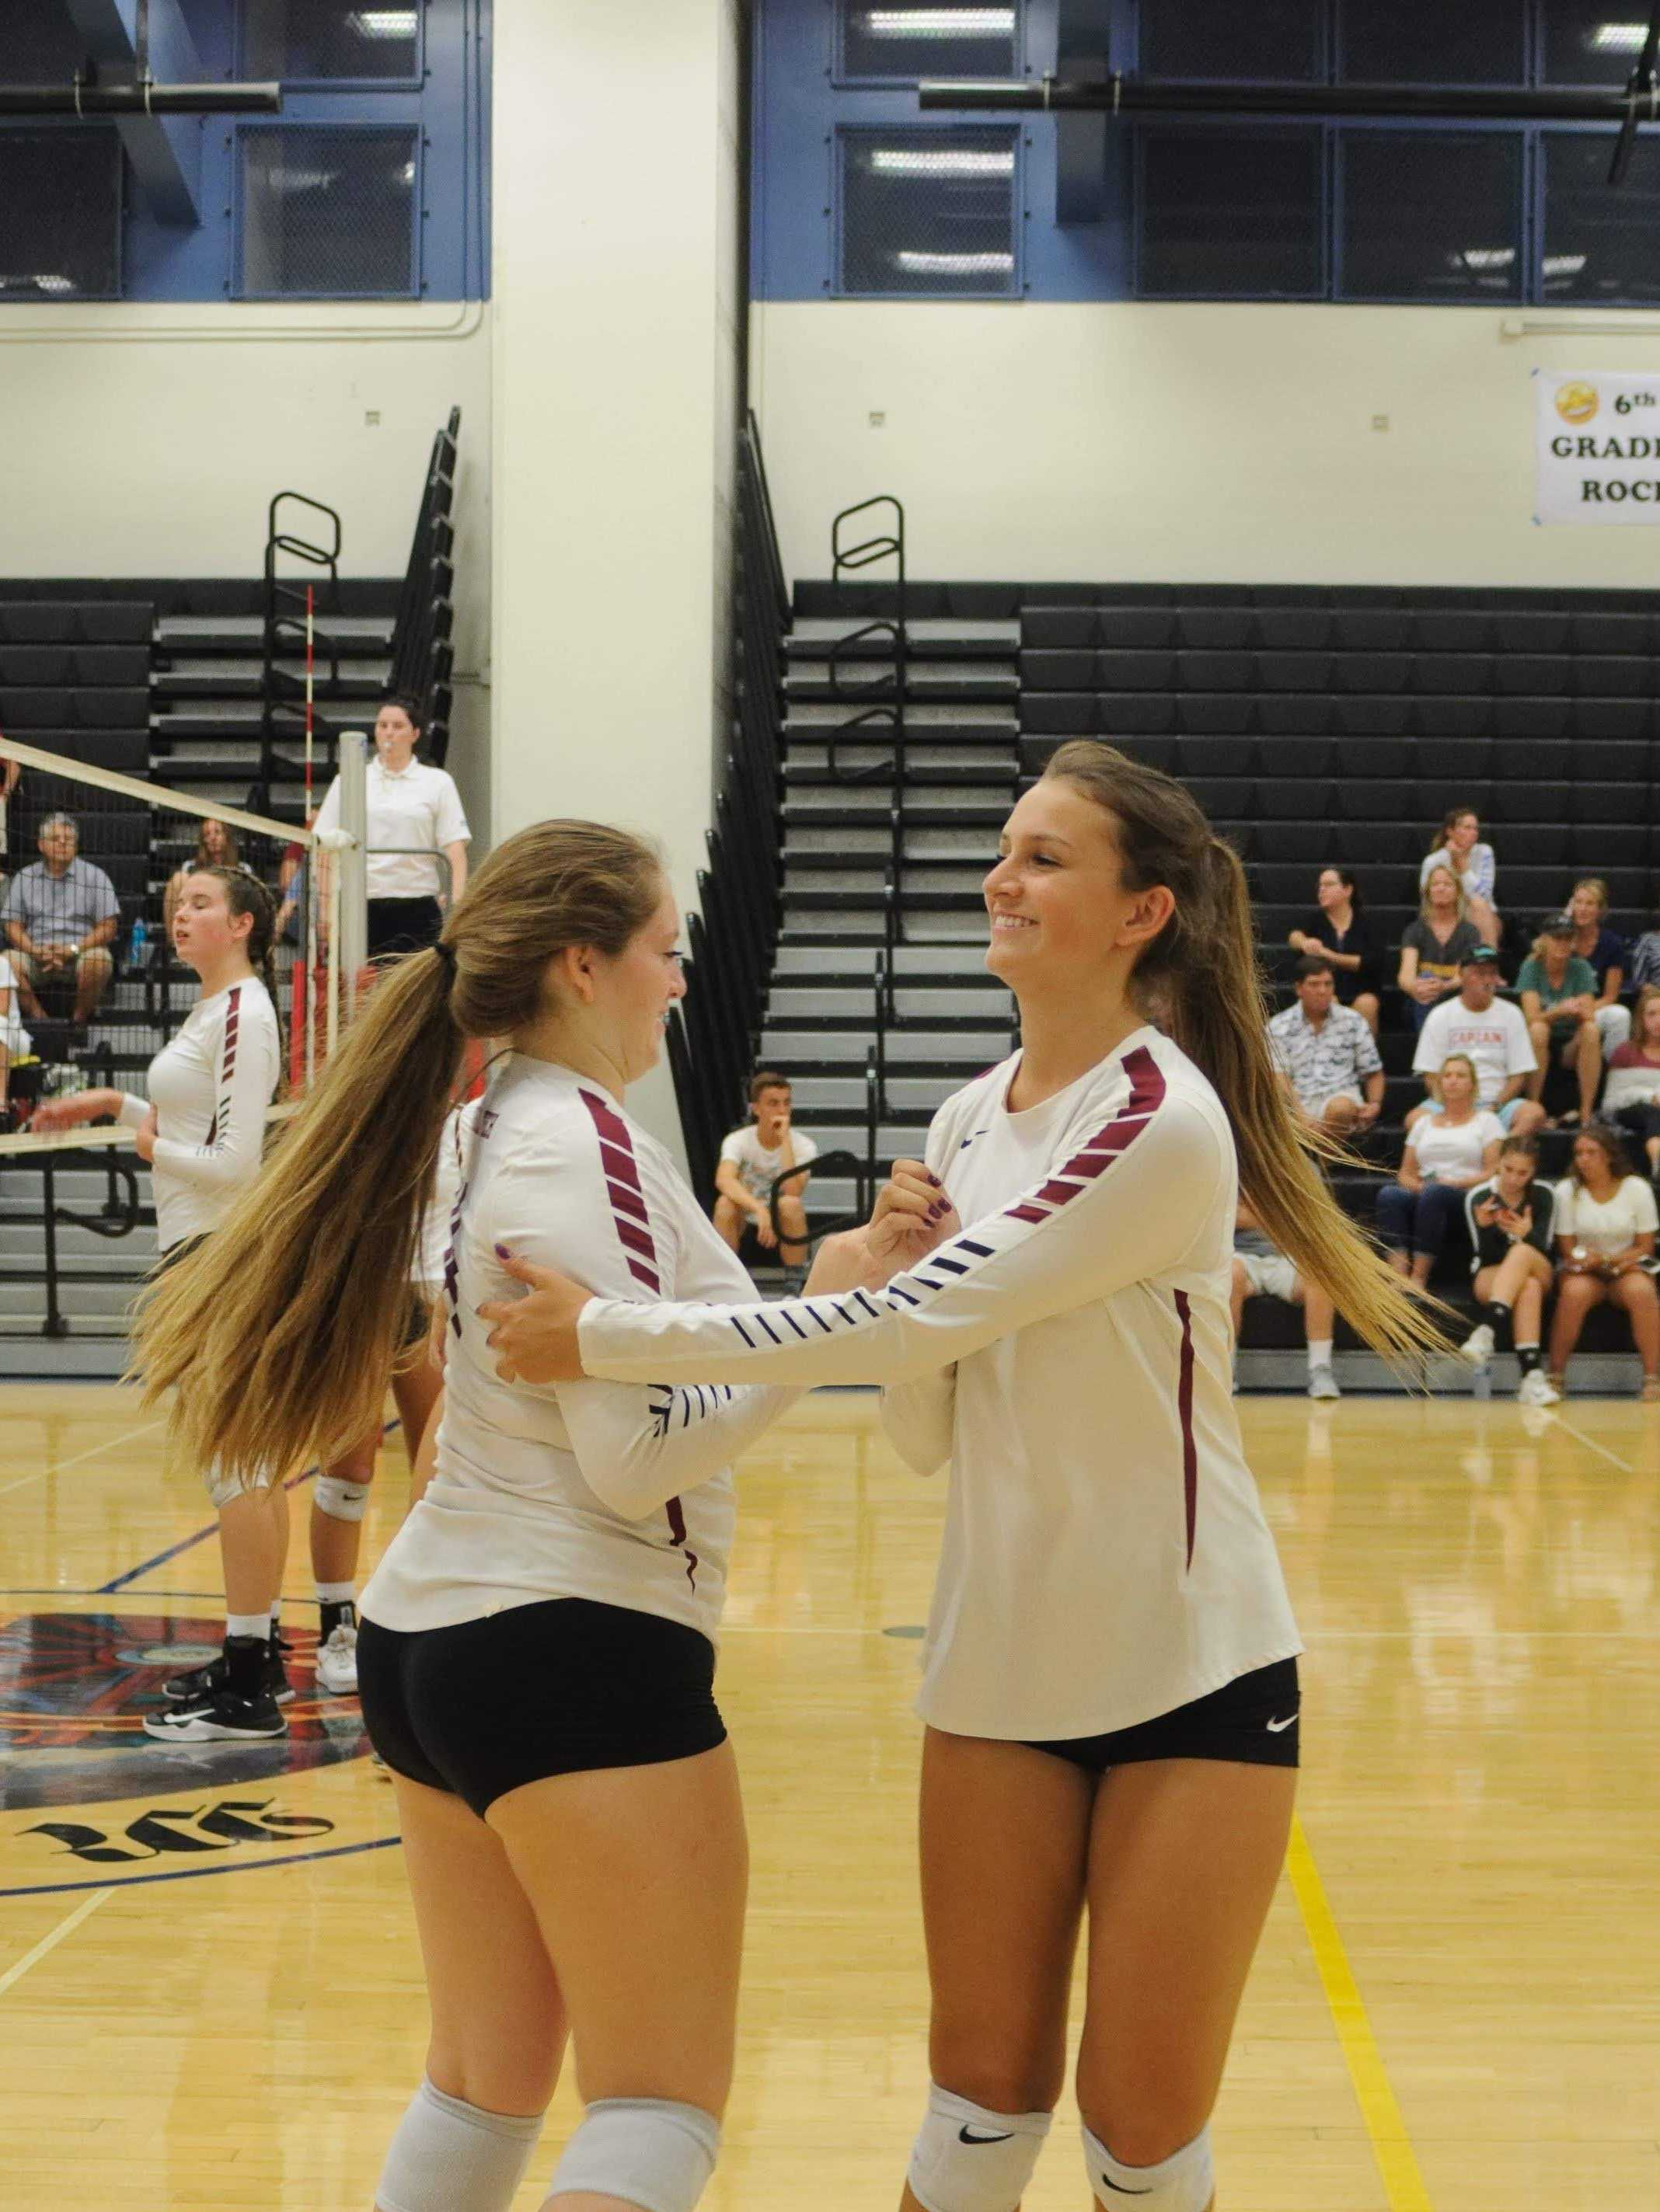 Pearl Esparza '19 congratulating sister Angel Esparza '20 as she subs in. Credit: Muriel Rowley / The Foothill Dragon Press